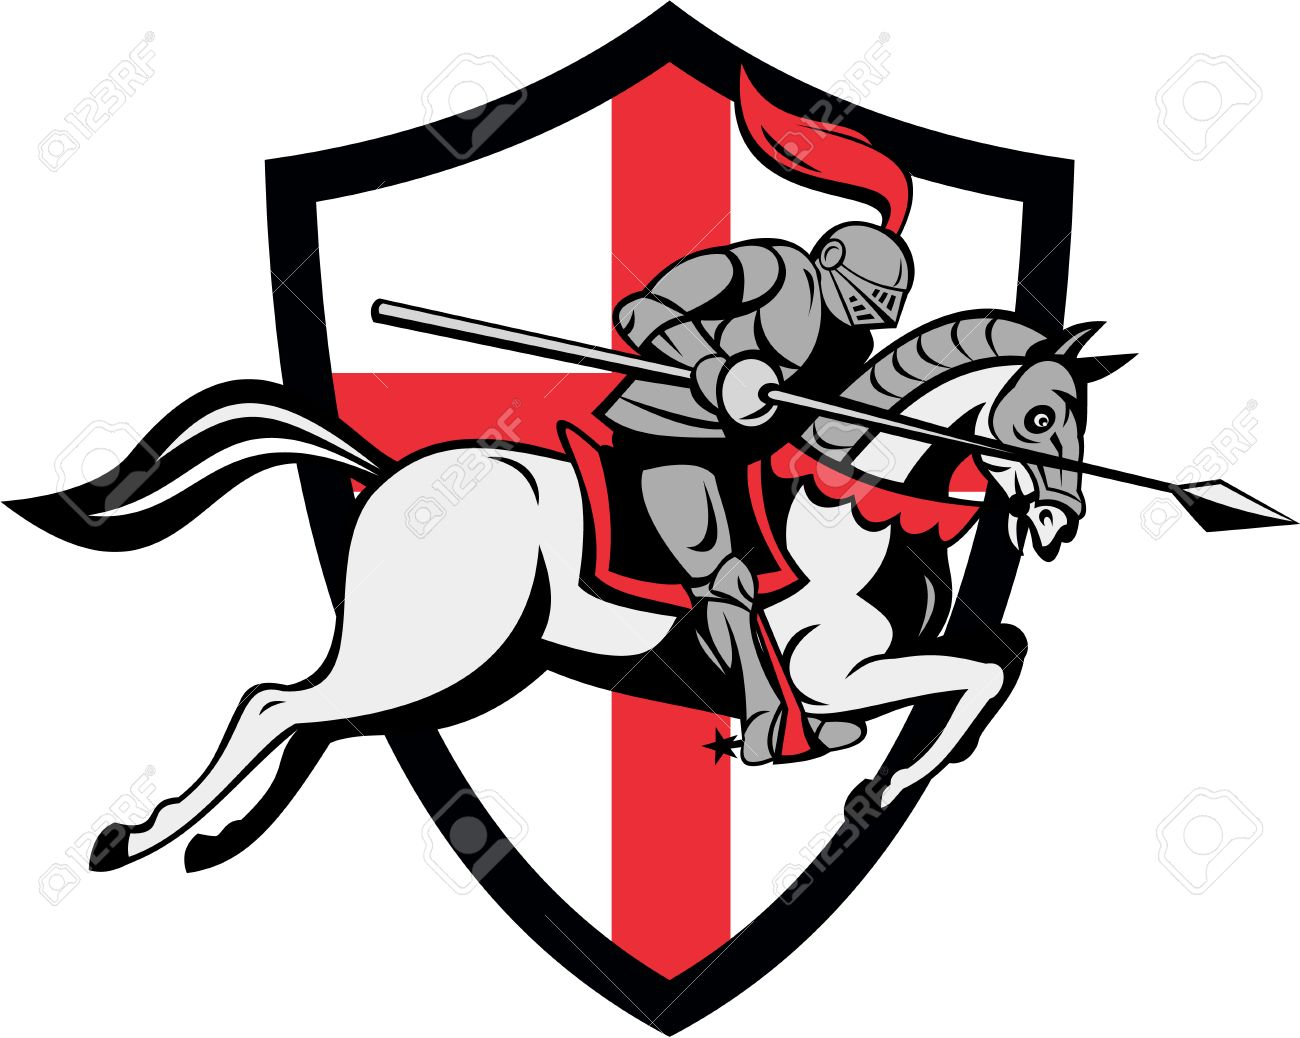 Illustration of knight in full armor riding a horse armed with lance and England English flag in background done in retro style. Stock Vector - 25967942